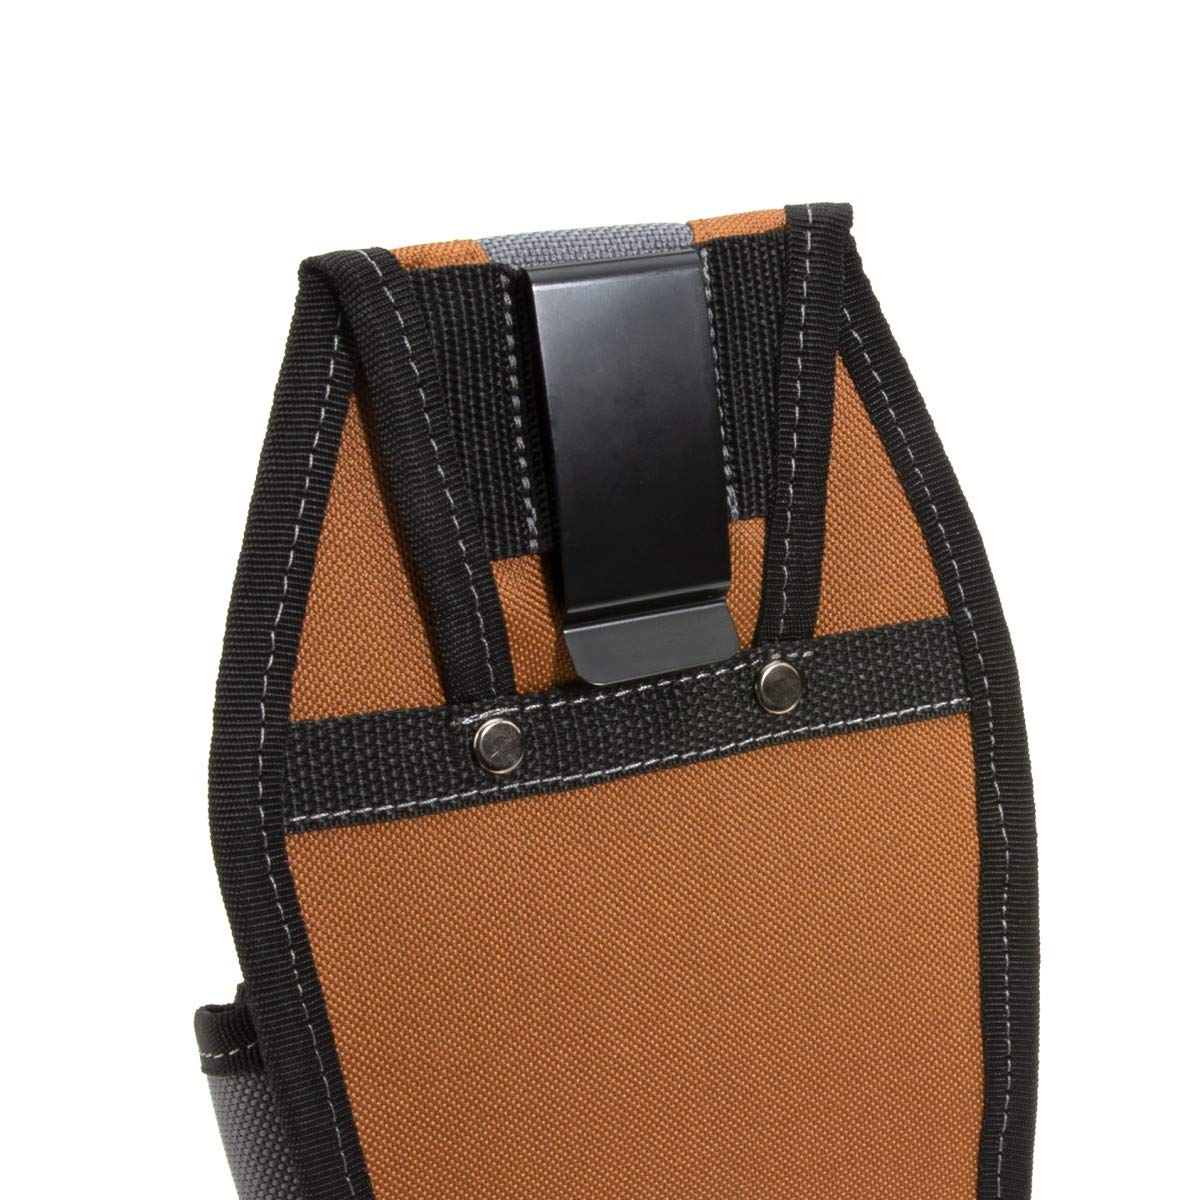 Dickies Work Gear 57099 4-Pocket Rigid Tool Pouch with Tape Clip by Dickies Work Gear (Image #3)